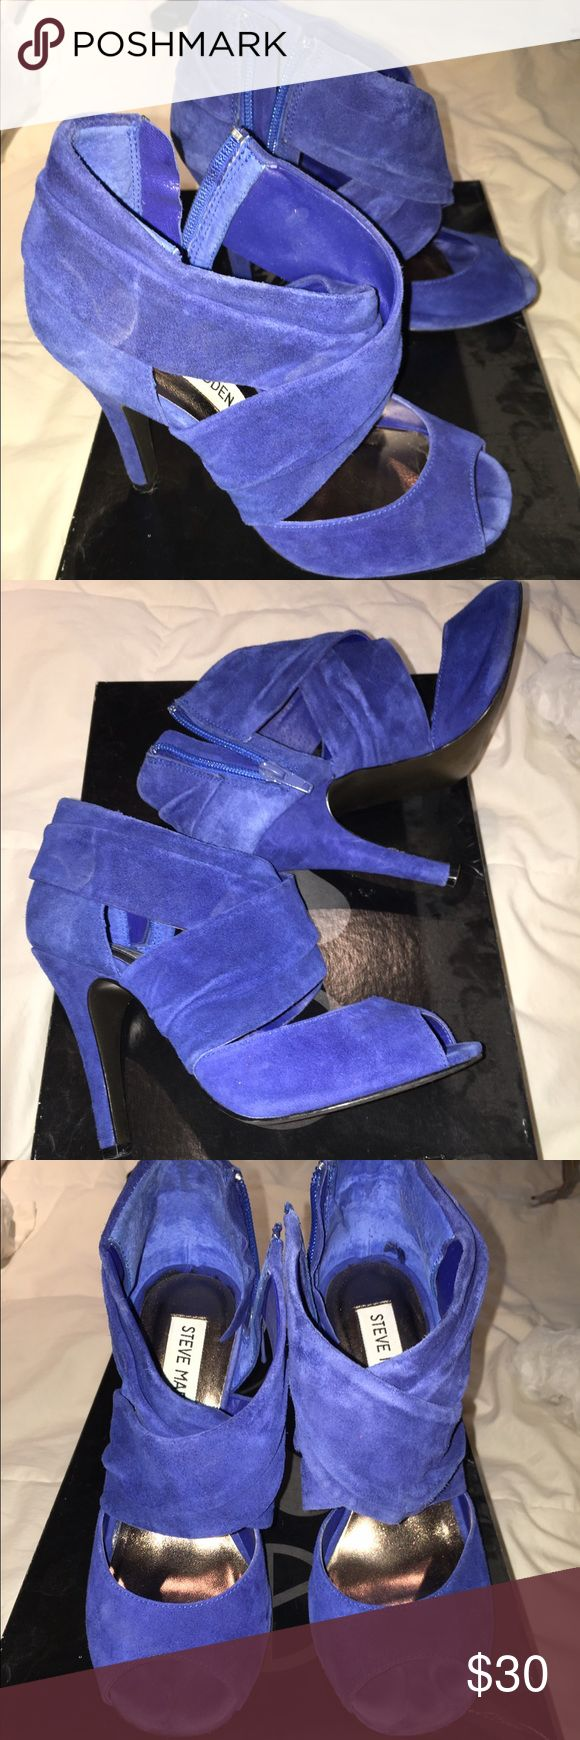 Steve Madden Suede heels- Taboo- Sz 5.5 Worn once- Steve Madden Blue Suede heels- Sz 5.5 with original box and receipt Steve Madden Shoes Heels